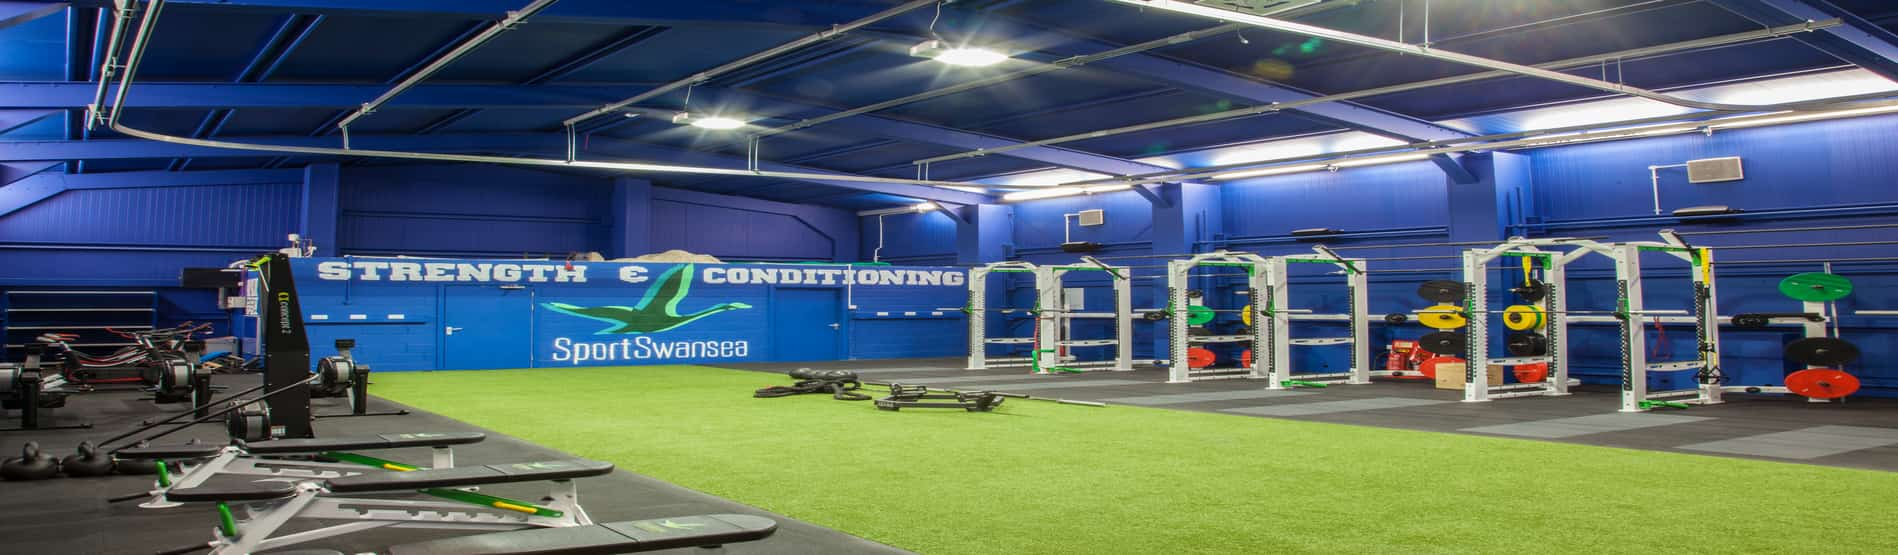 Image of The Shed, the universities elite strength and conditioning unit